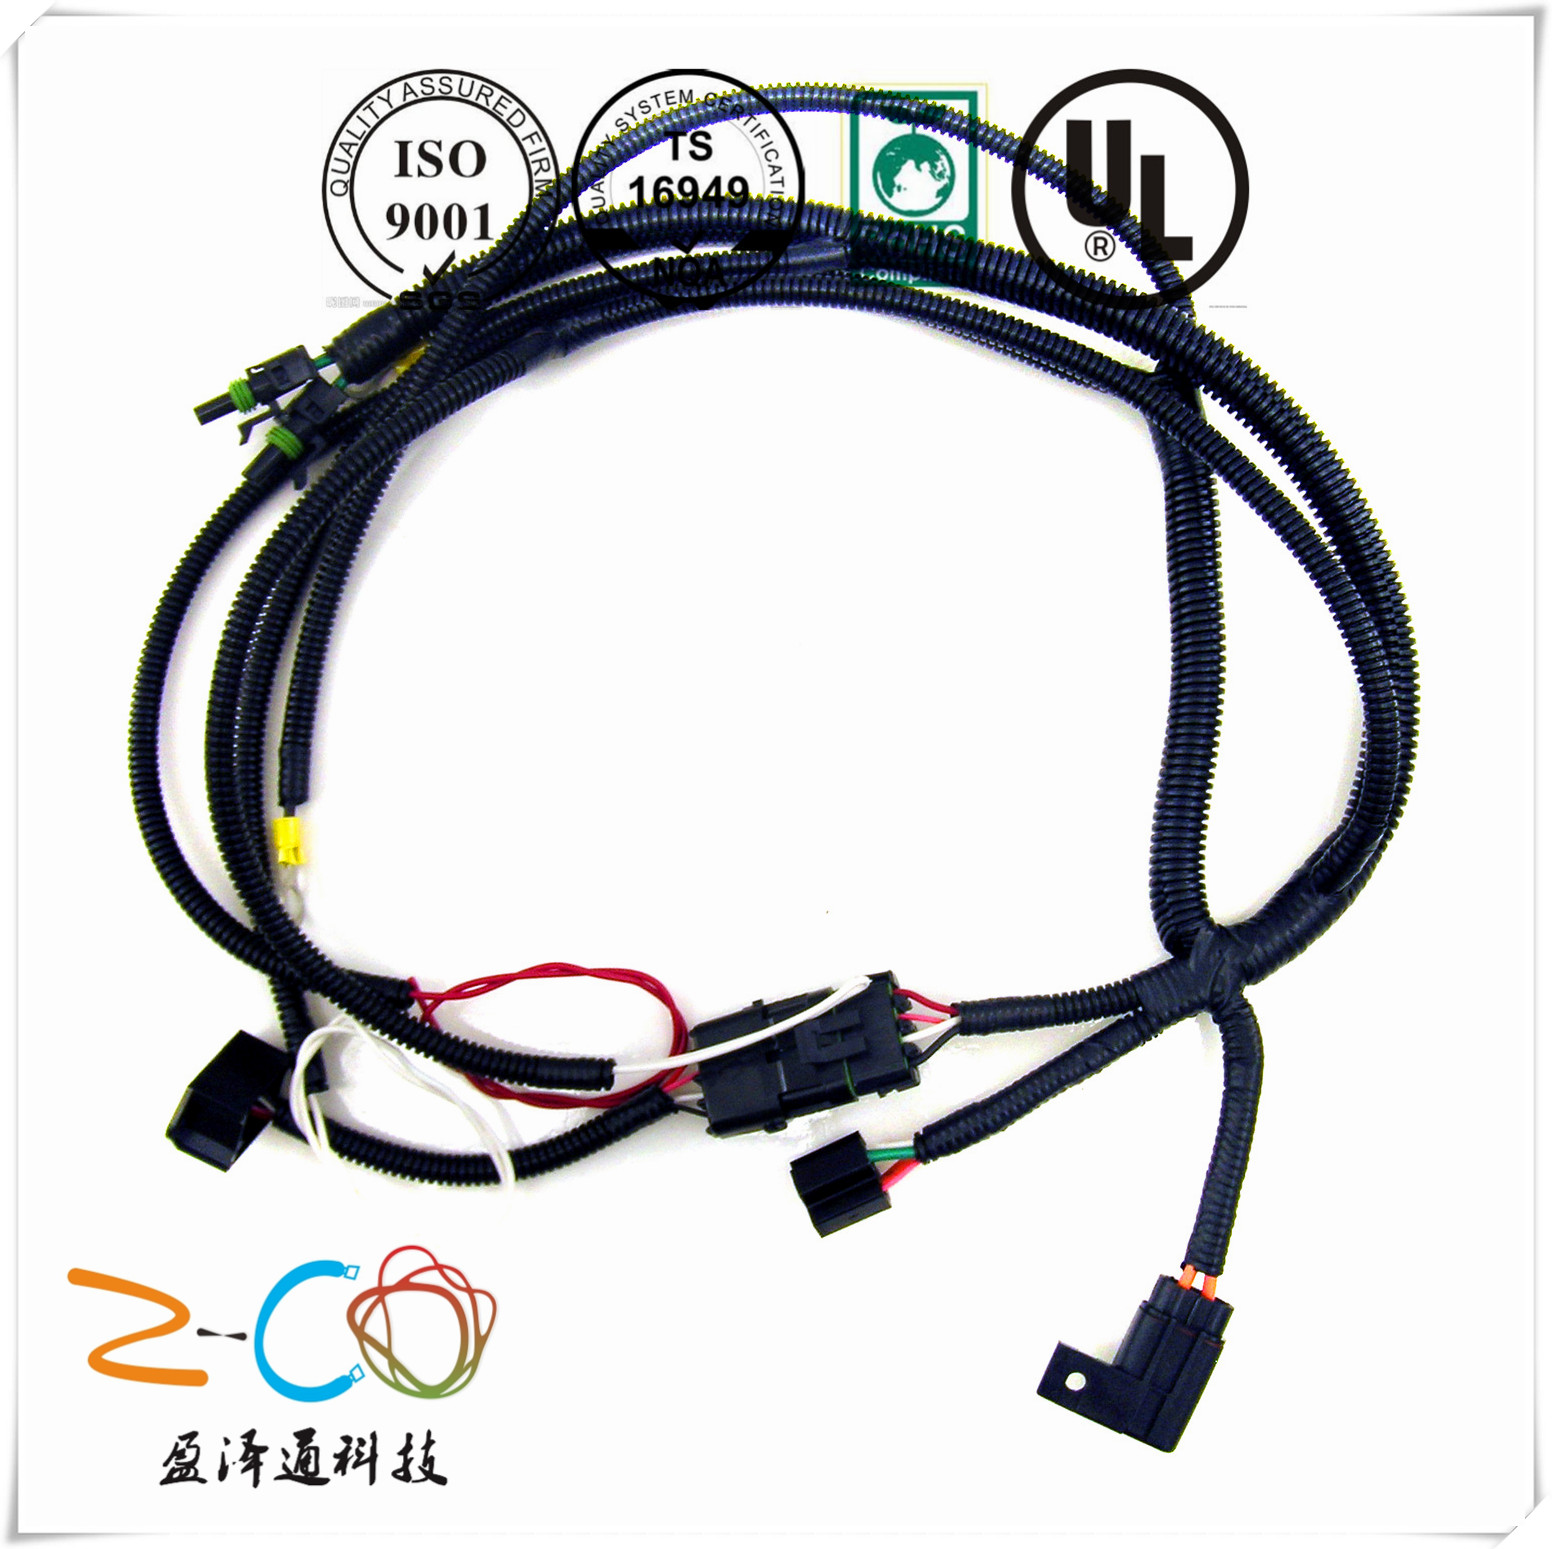 Good Quality Wire Harness And Cable Assembly Manufacturer From China Electrical Wiring For Cars Carzco819